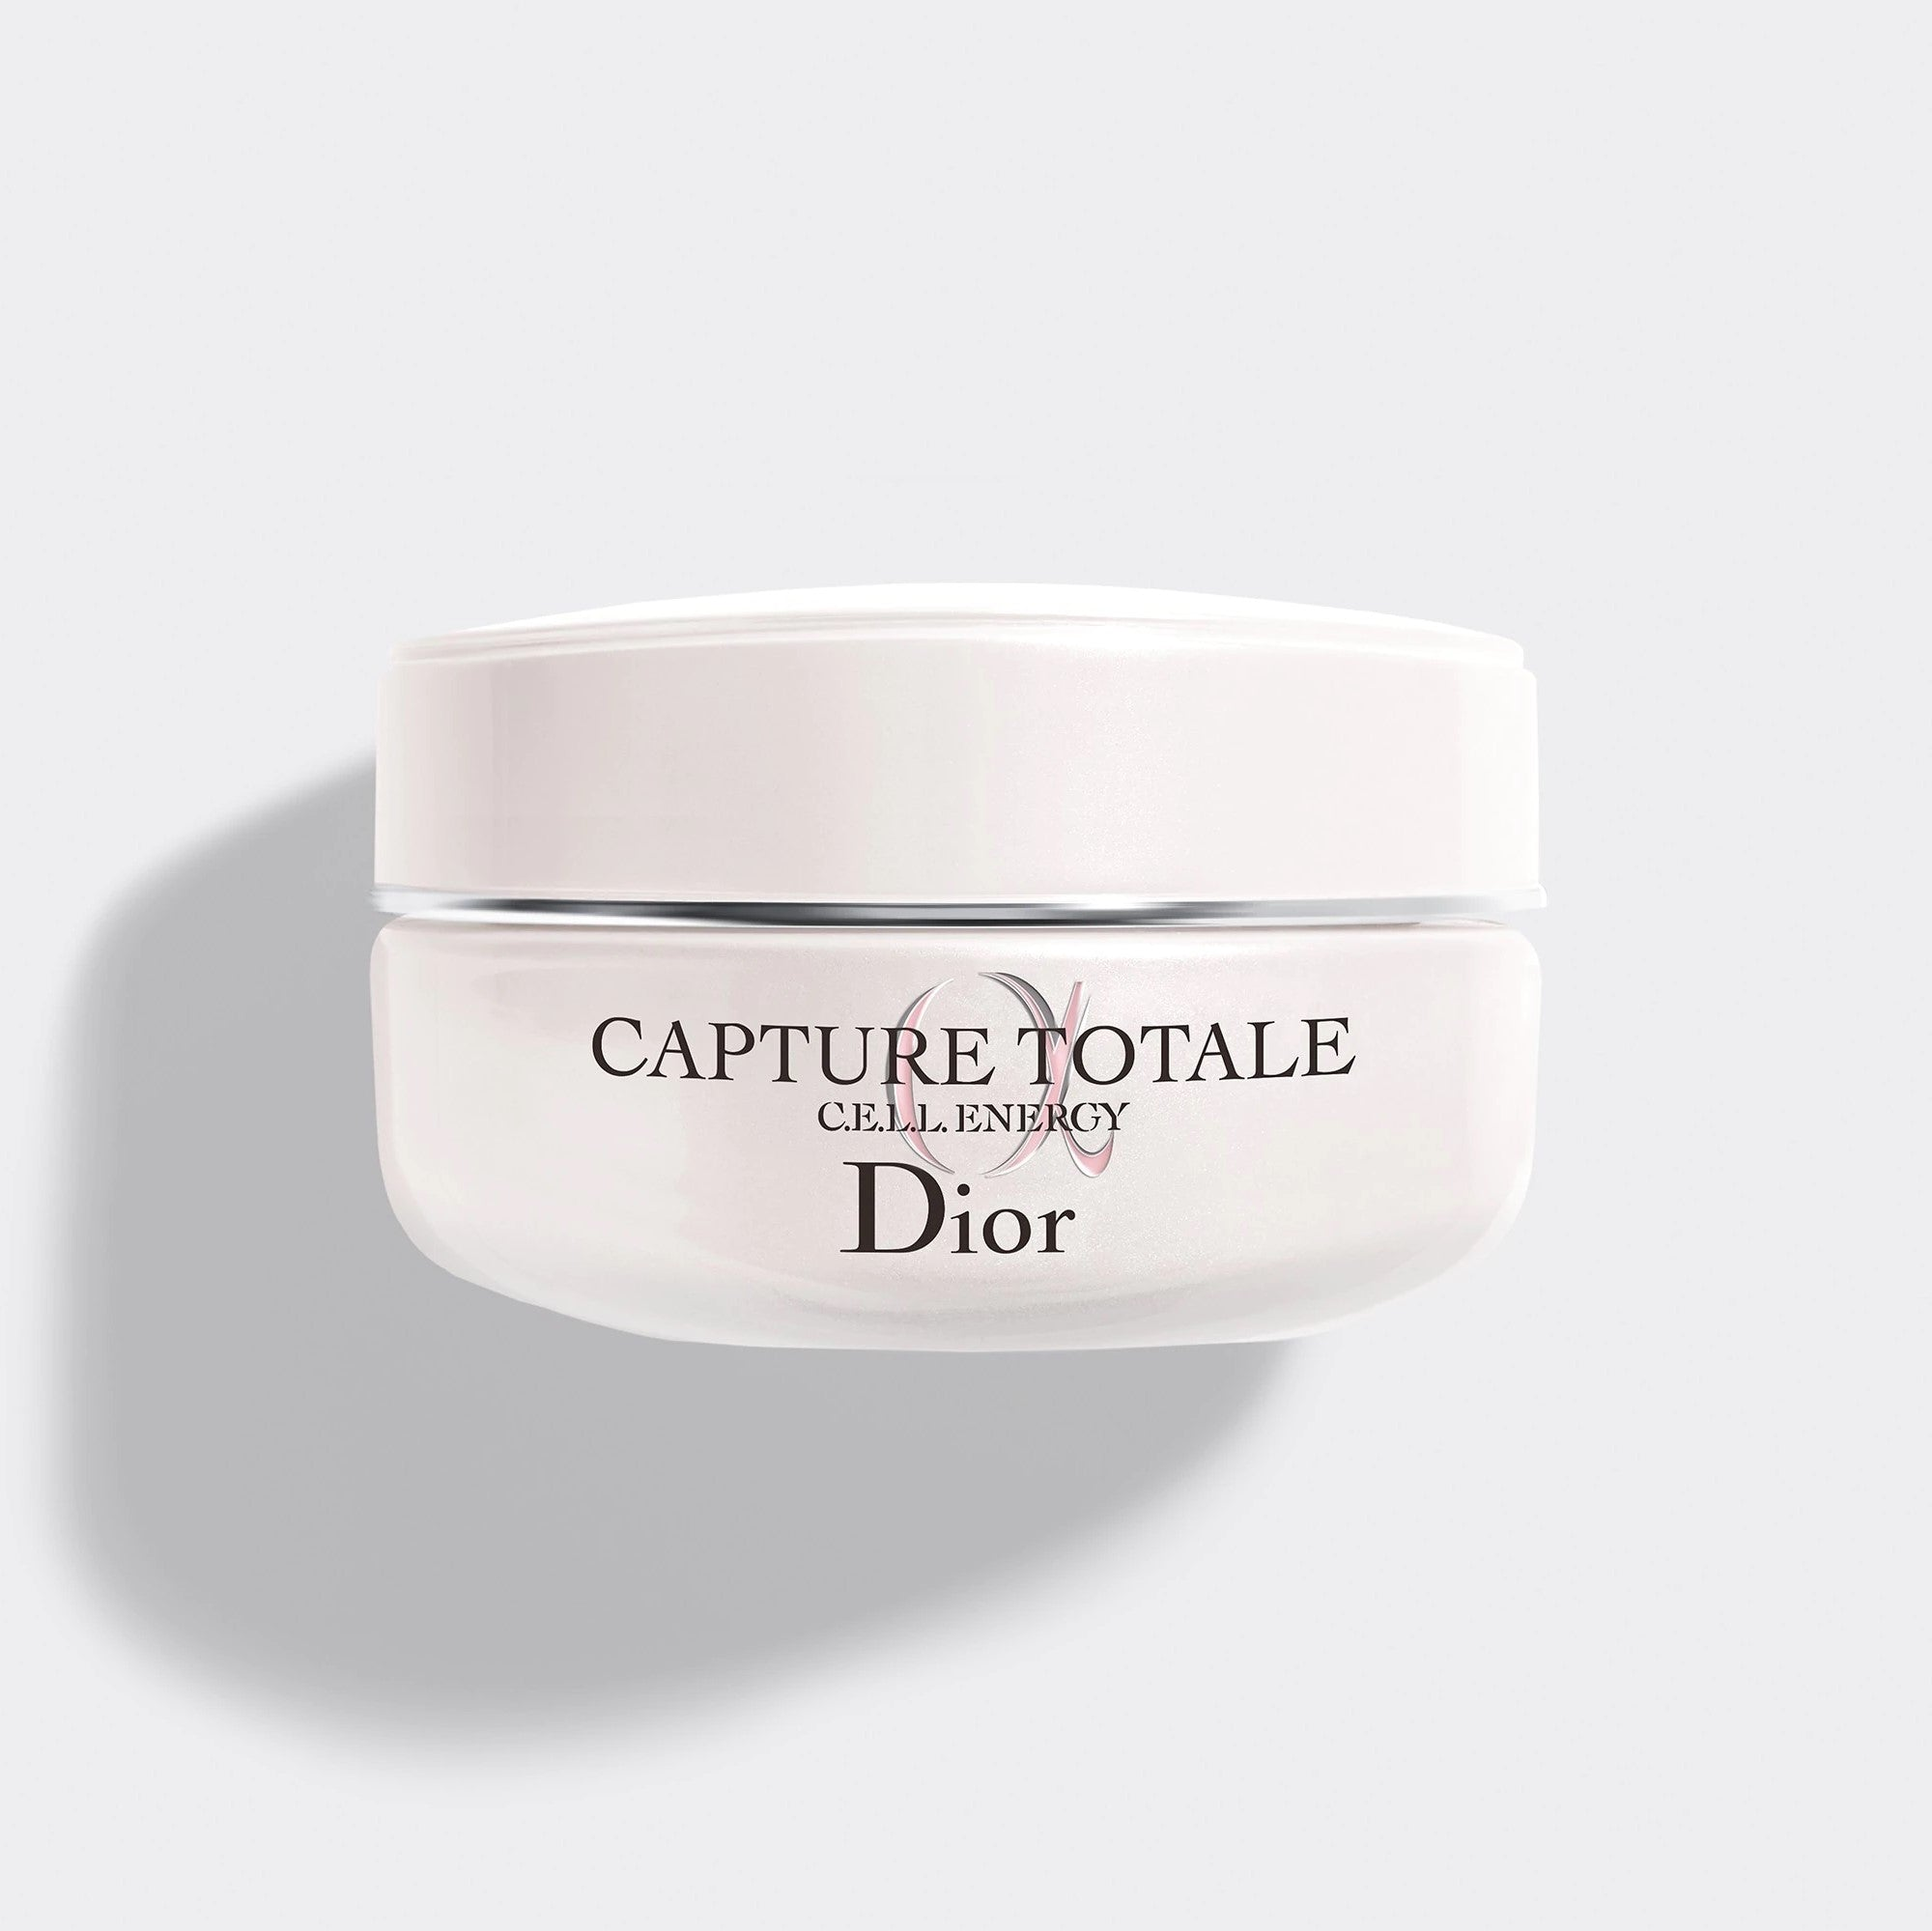 CAPTURE TOTALE | Firming & wrinkle-correcting eye cream